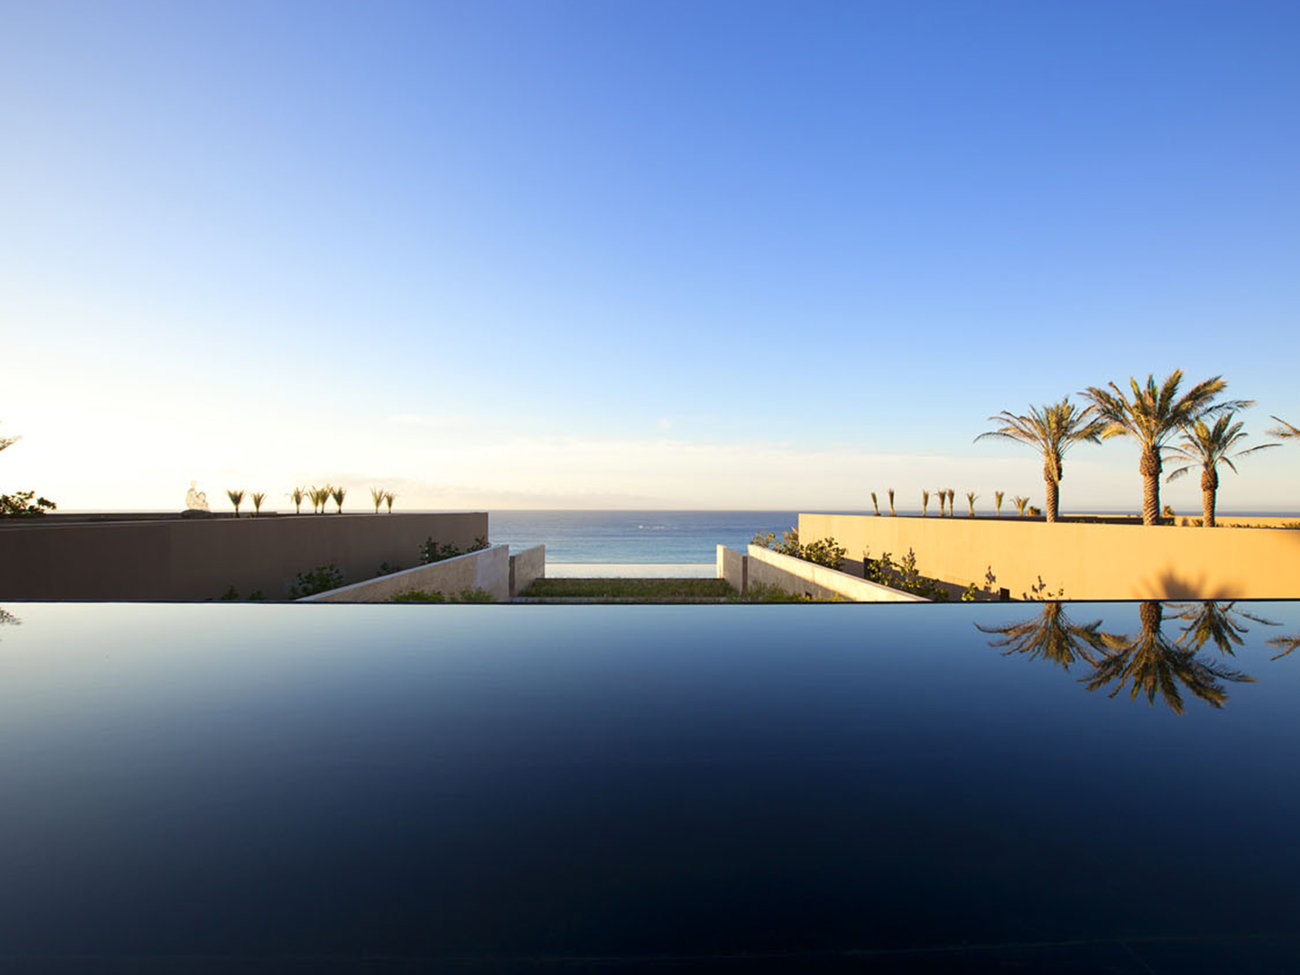 JW Marriott Los Cabos Beach Resort & Spa Hotel